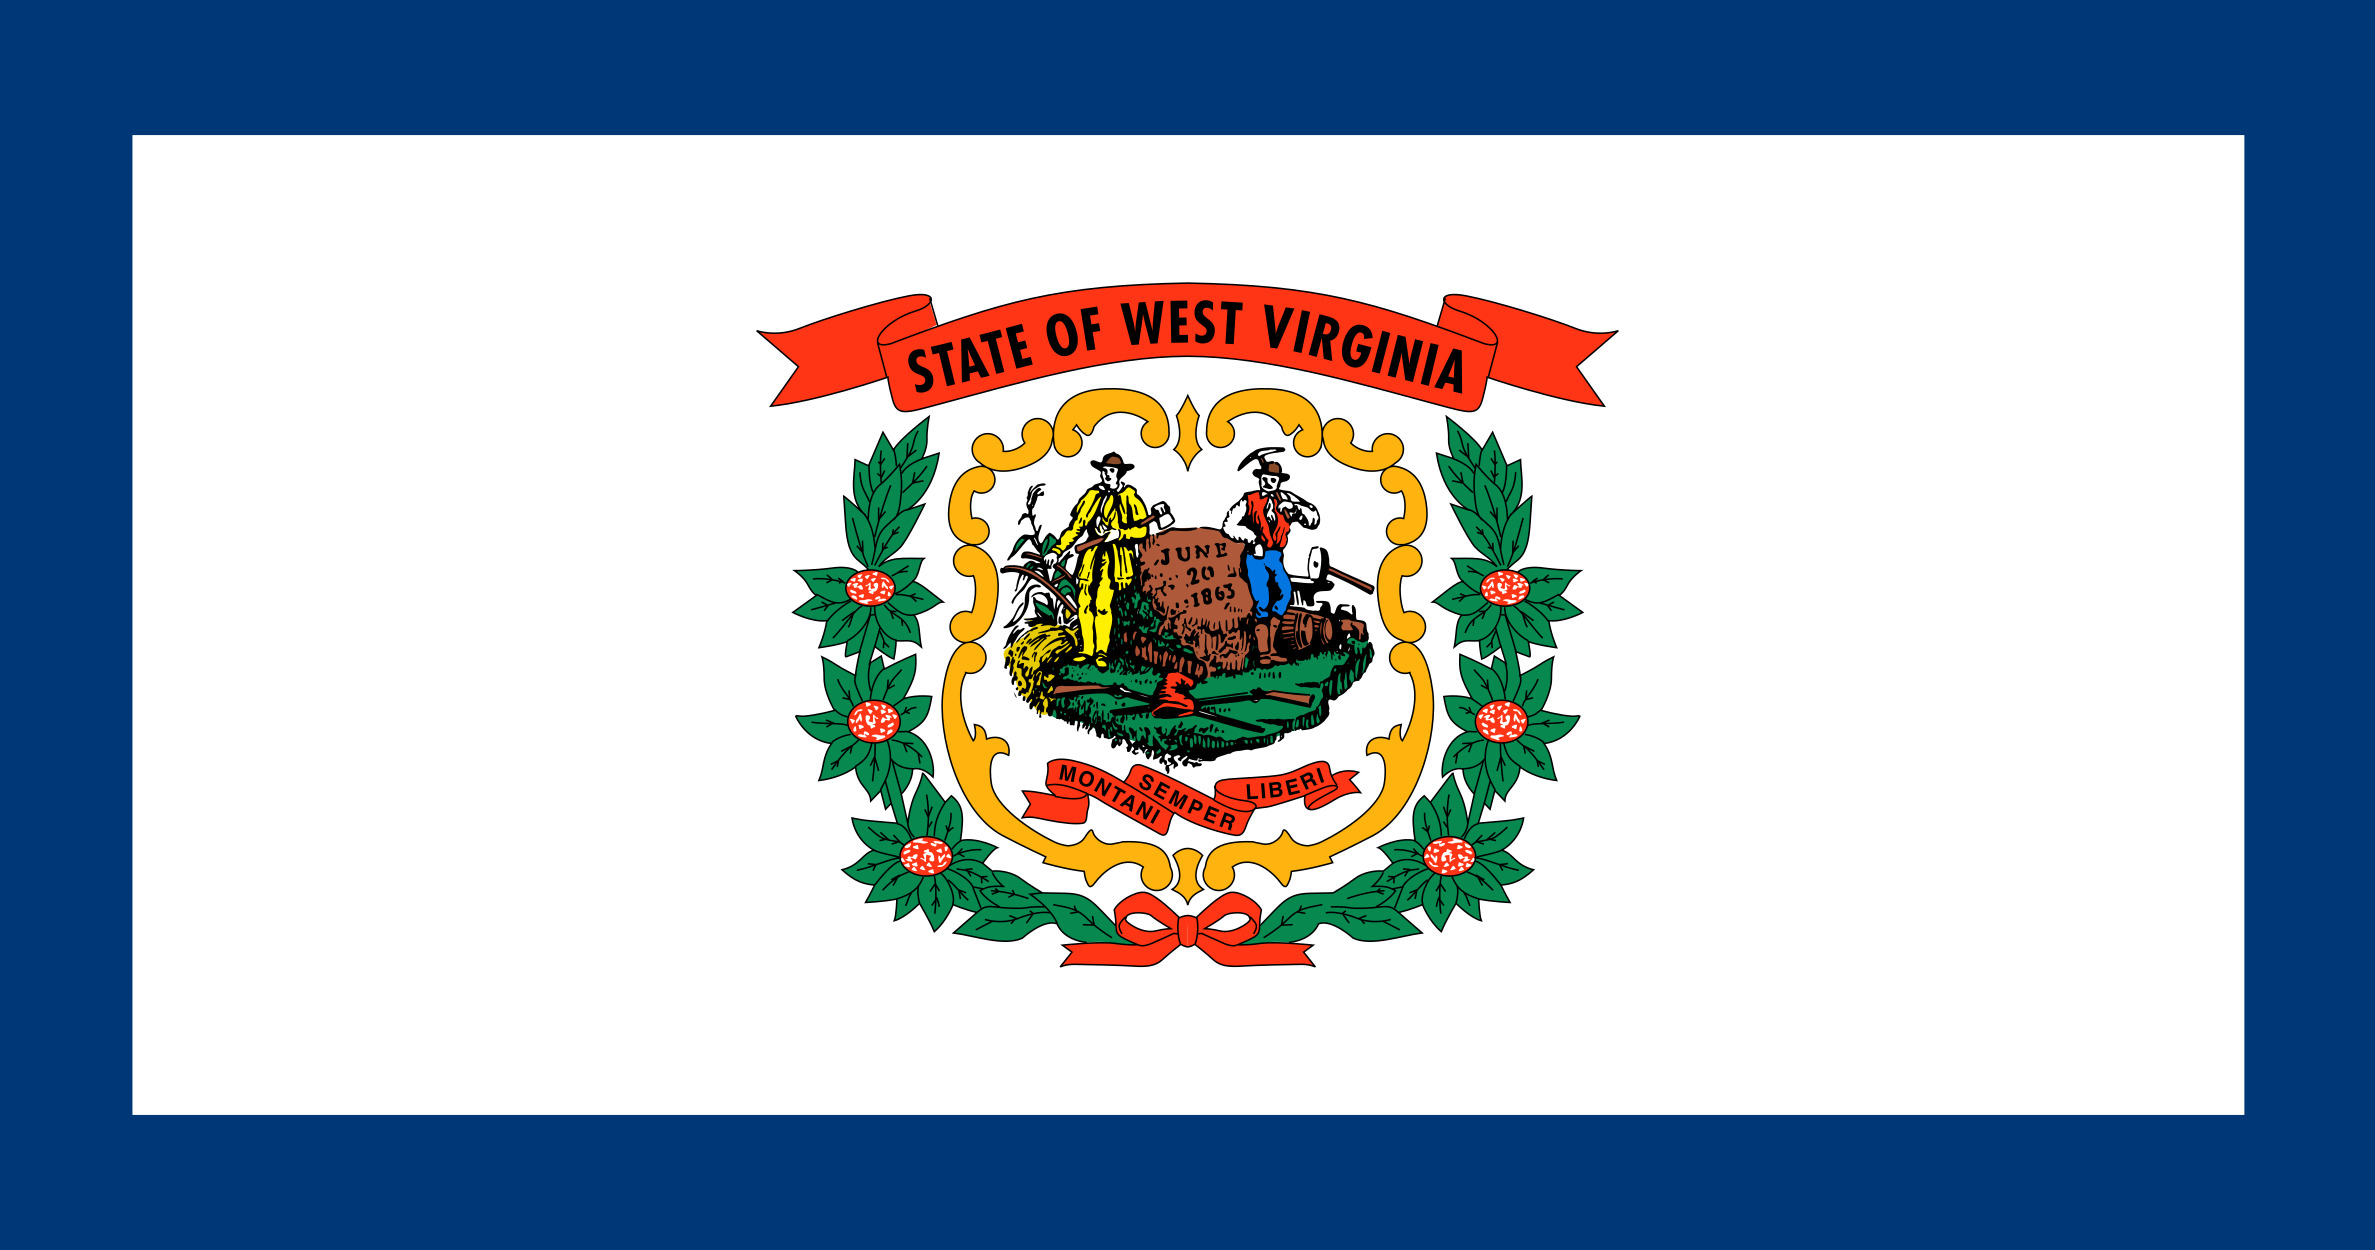 West Virginia State Flag Colors